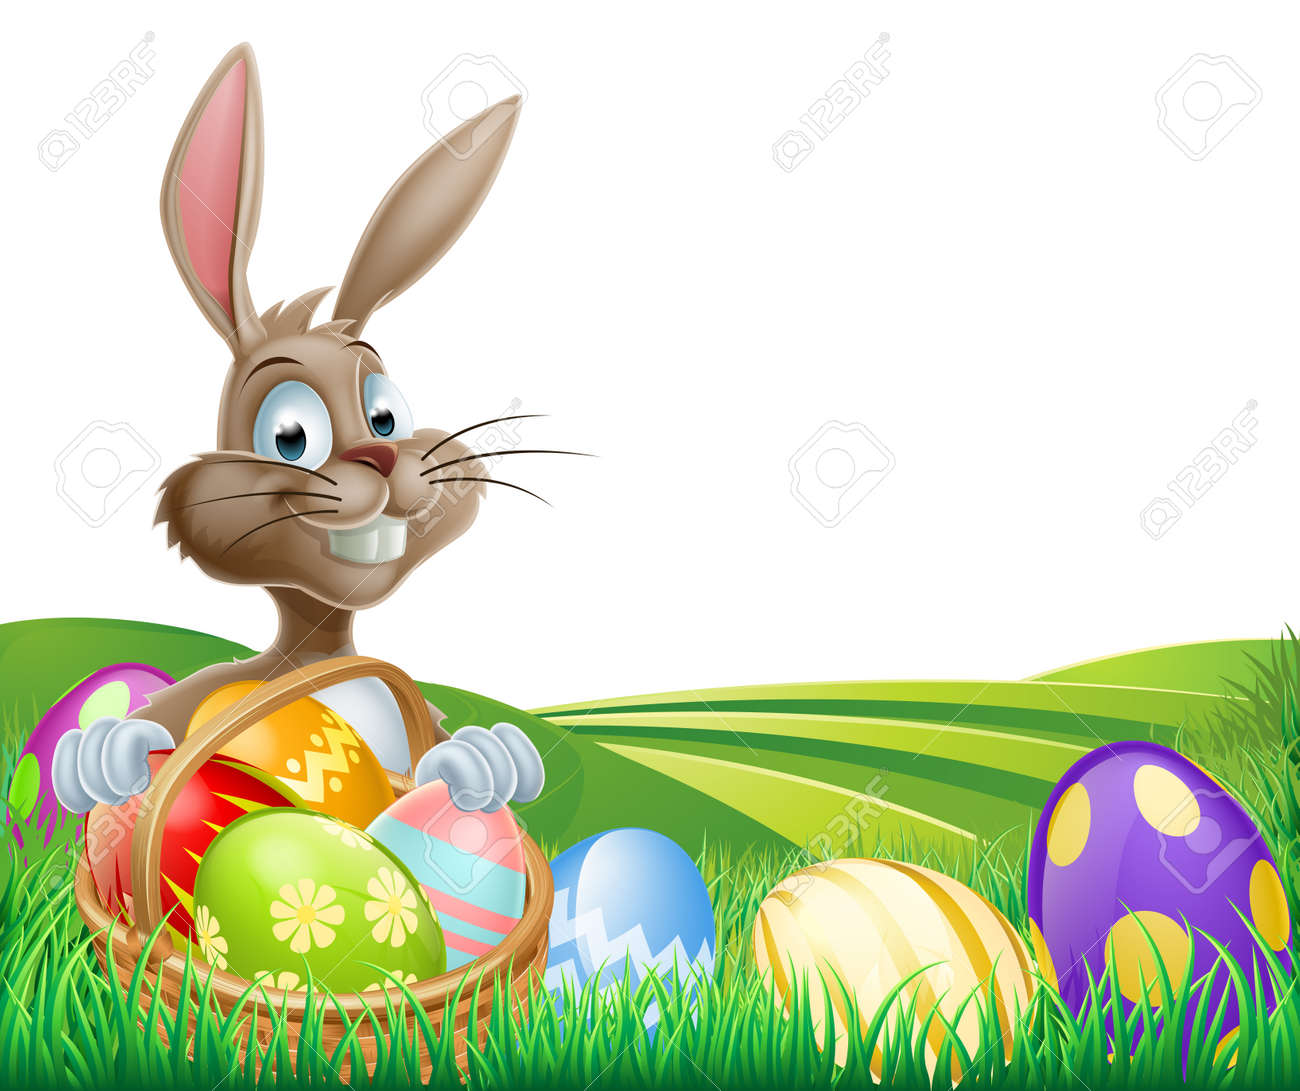 Cartoon Easter Bunny With A Hamper Of Chocolate Easter Eggs In ... for Real Easter Bunny With Eggs  146hul